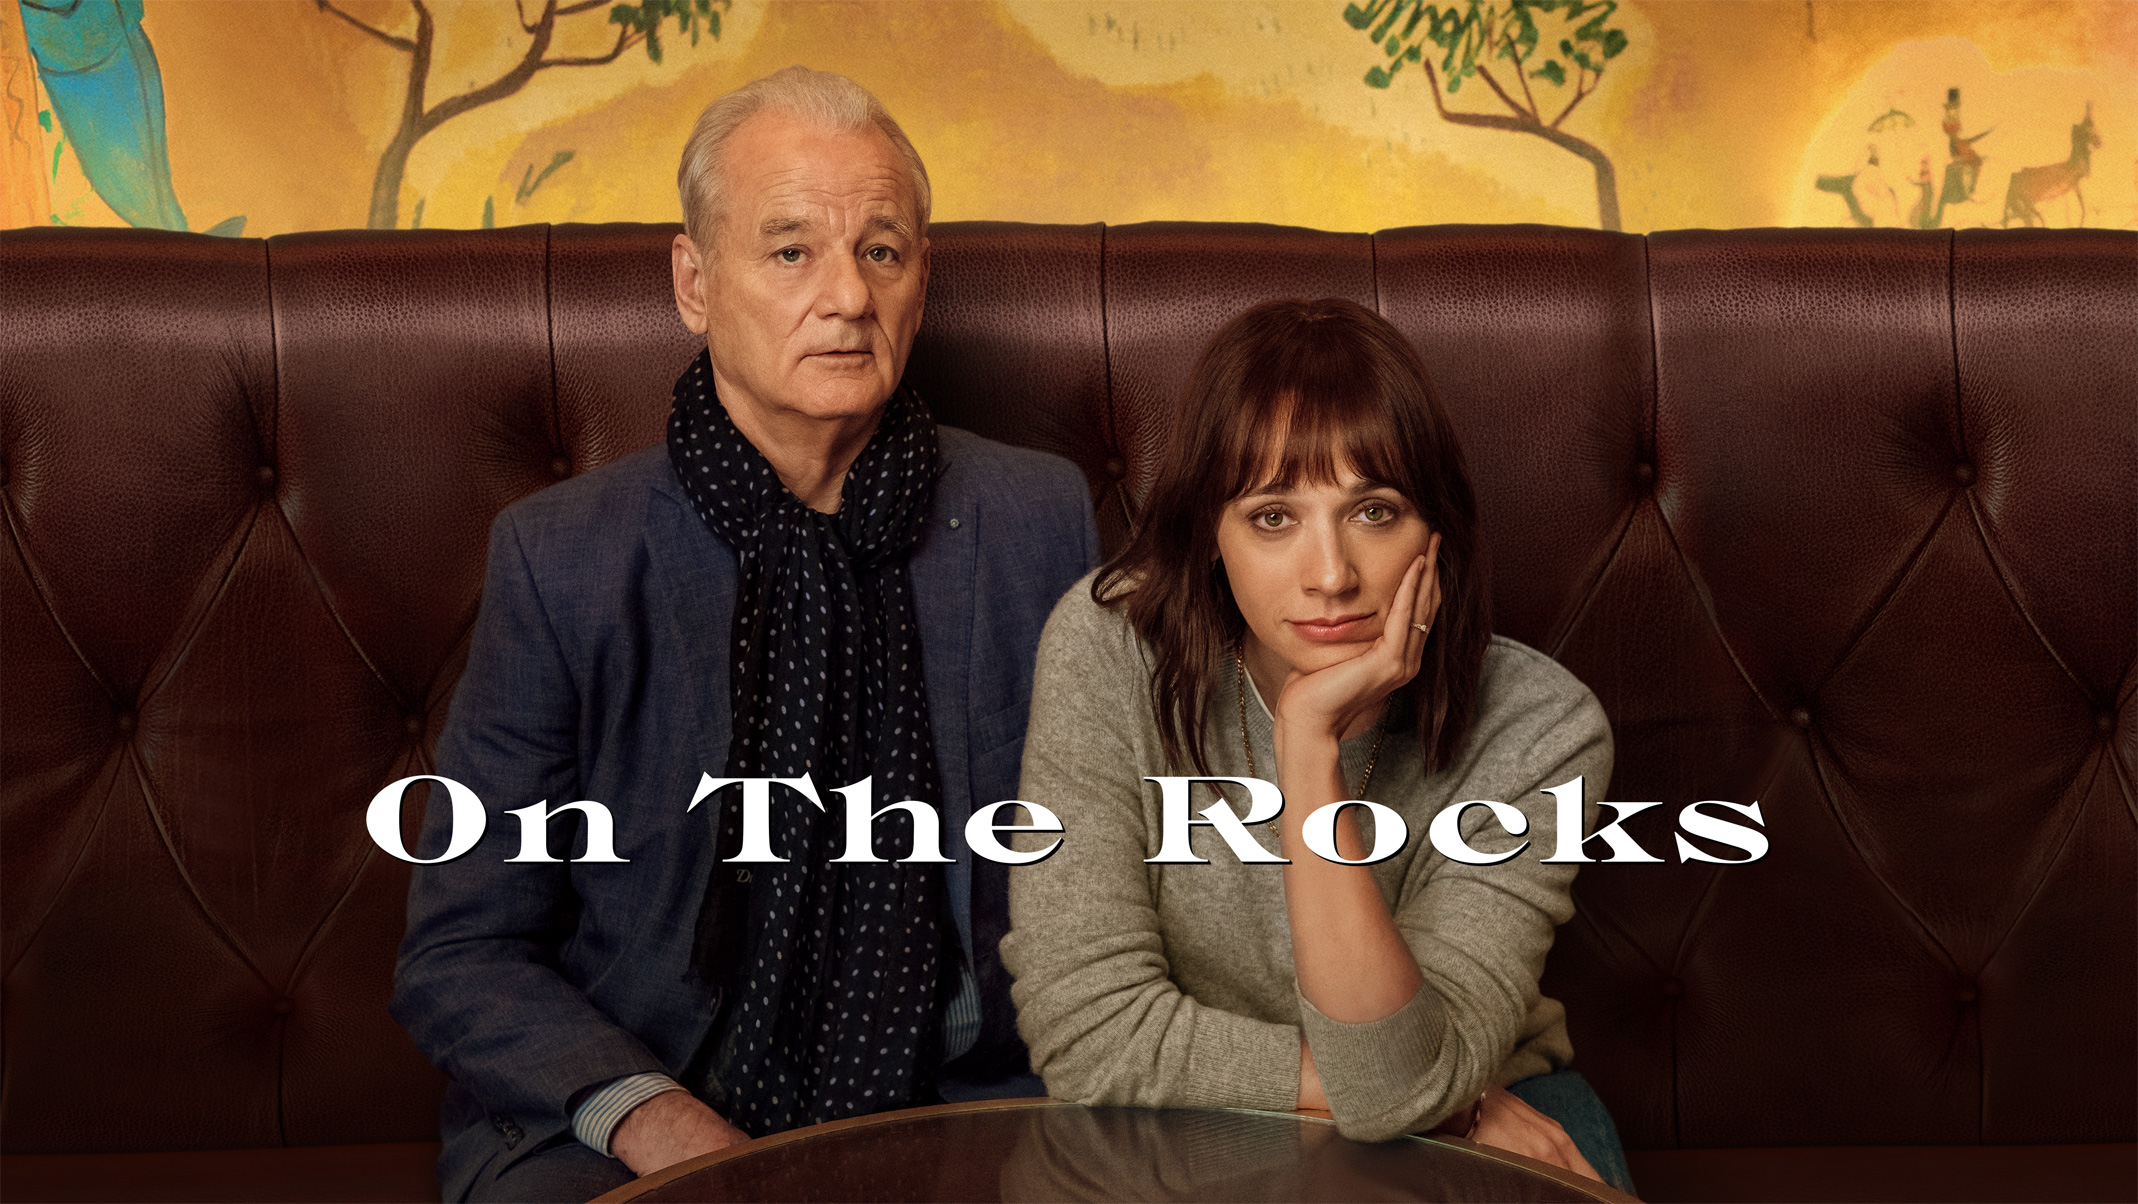 Felkeverve – On the Rocks. Bill Murray menti meg Coppola filmjét. Ajánló